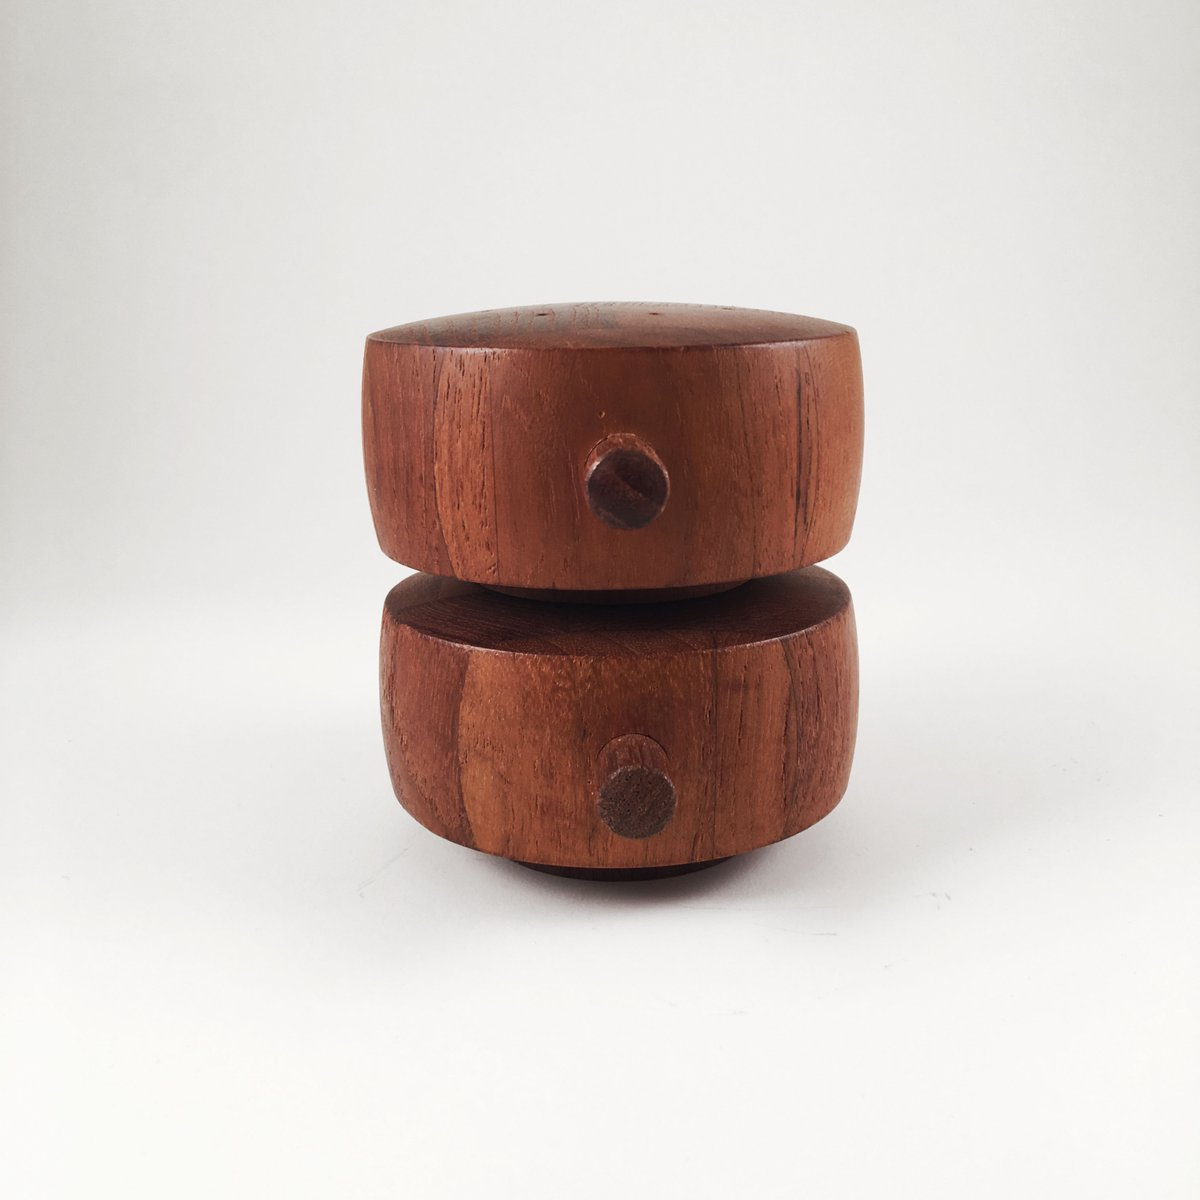 from the famous danish company Raadvad Scandinavian classic design Midcentury danish vintage salt and pepper mill made in teak wood